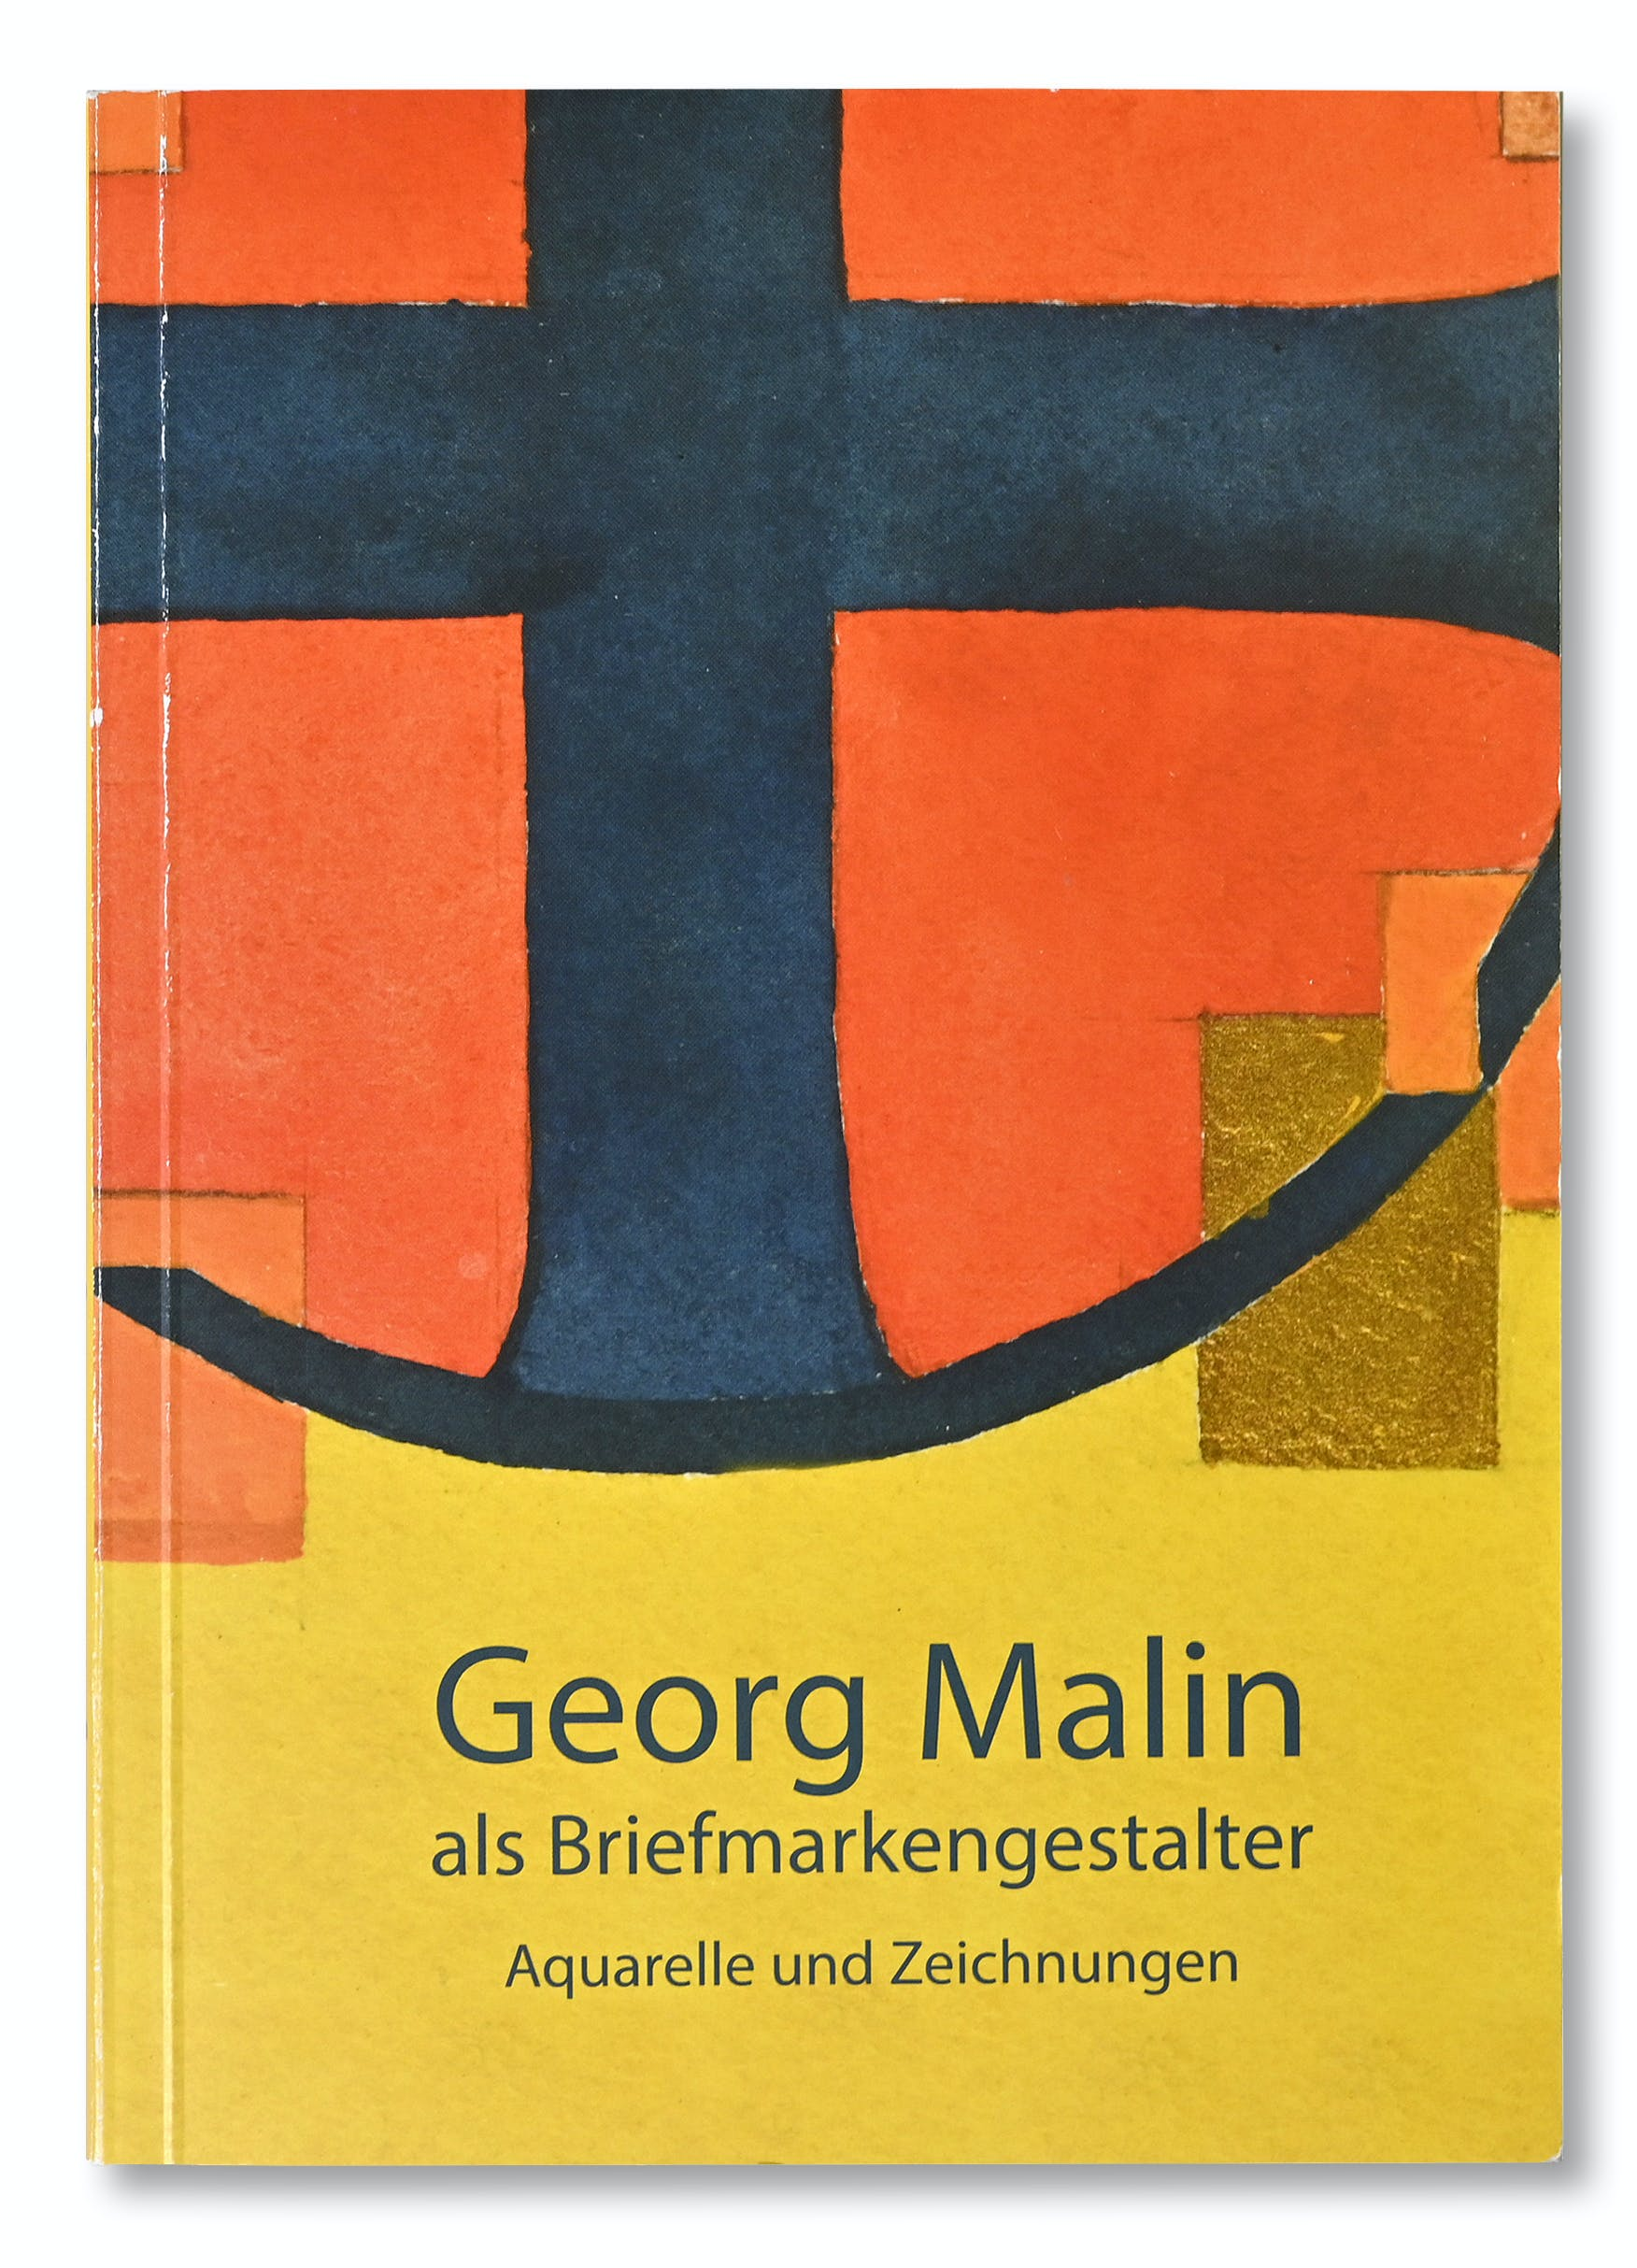 Publikation Georg Malin als Briefmarkengestalter